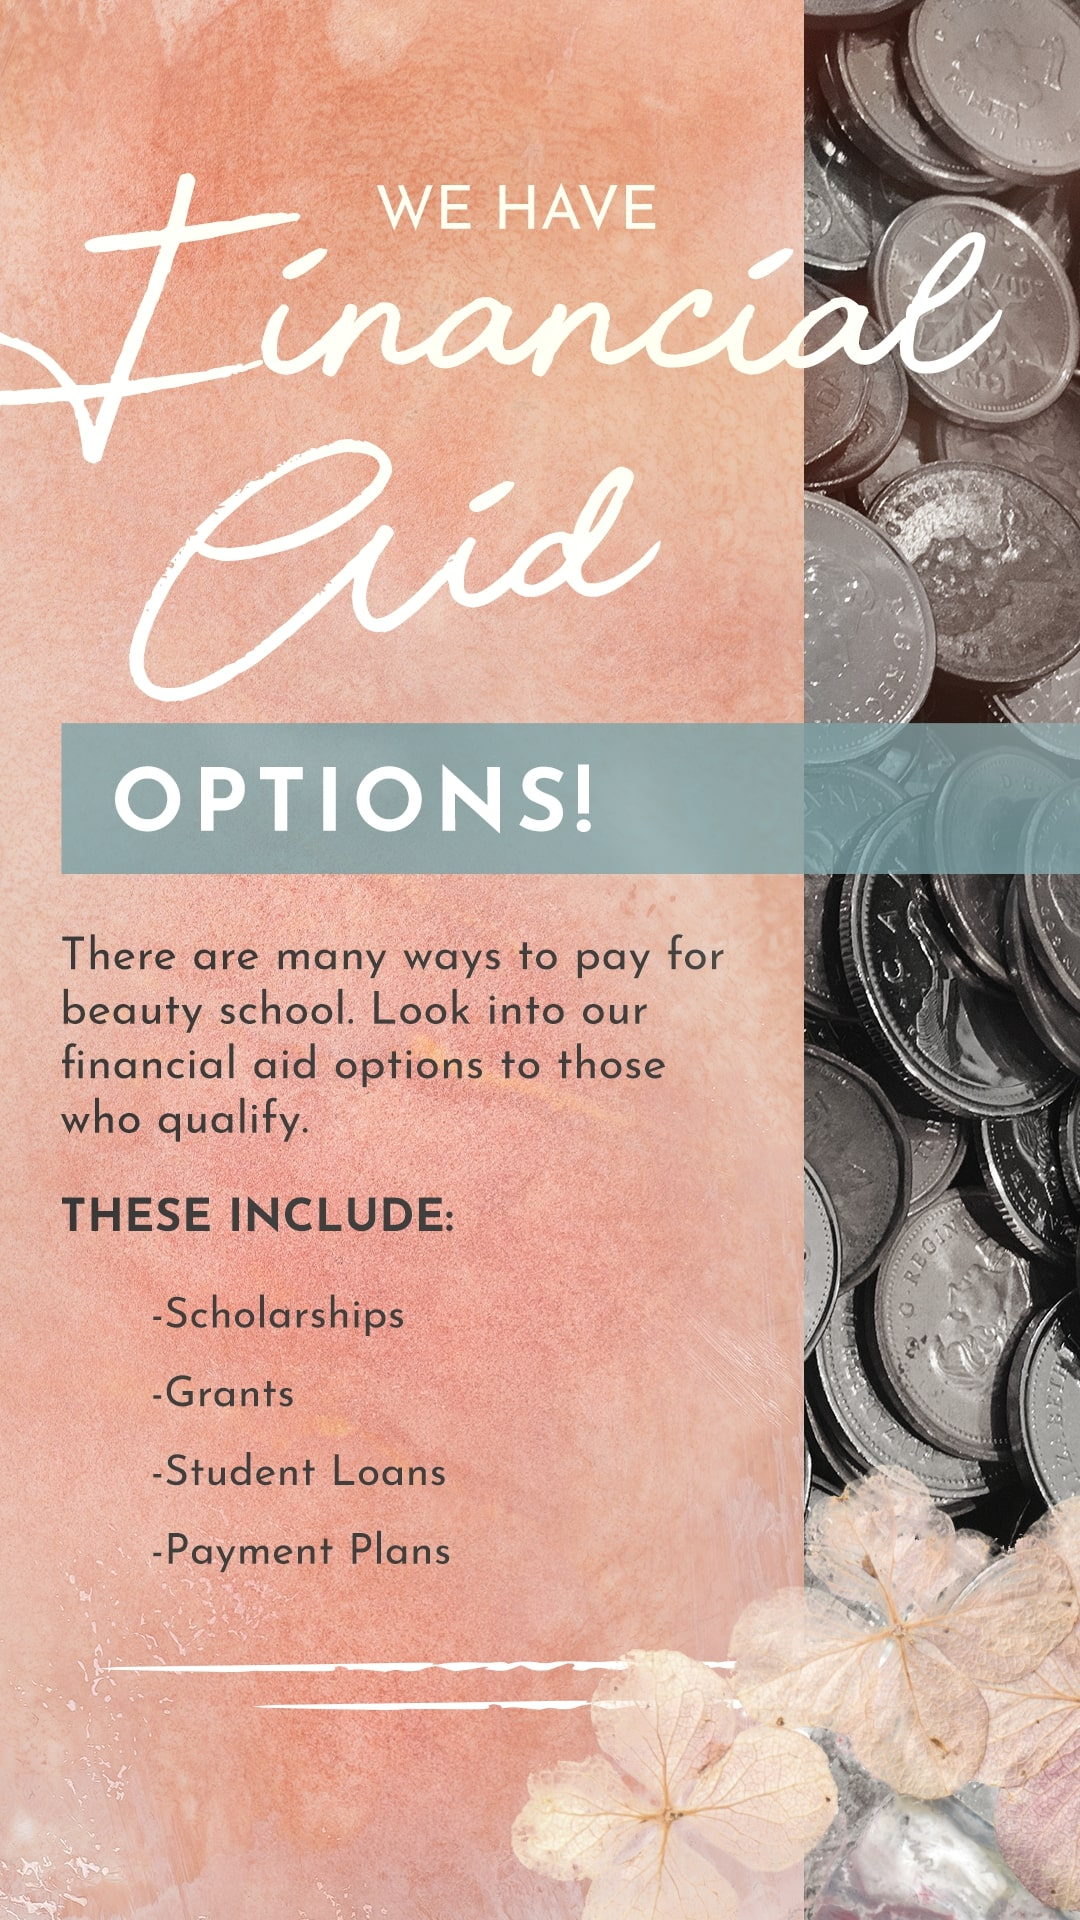 Financial aid options available to those who qualify.